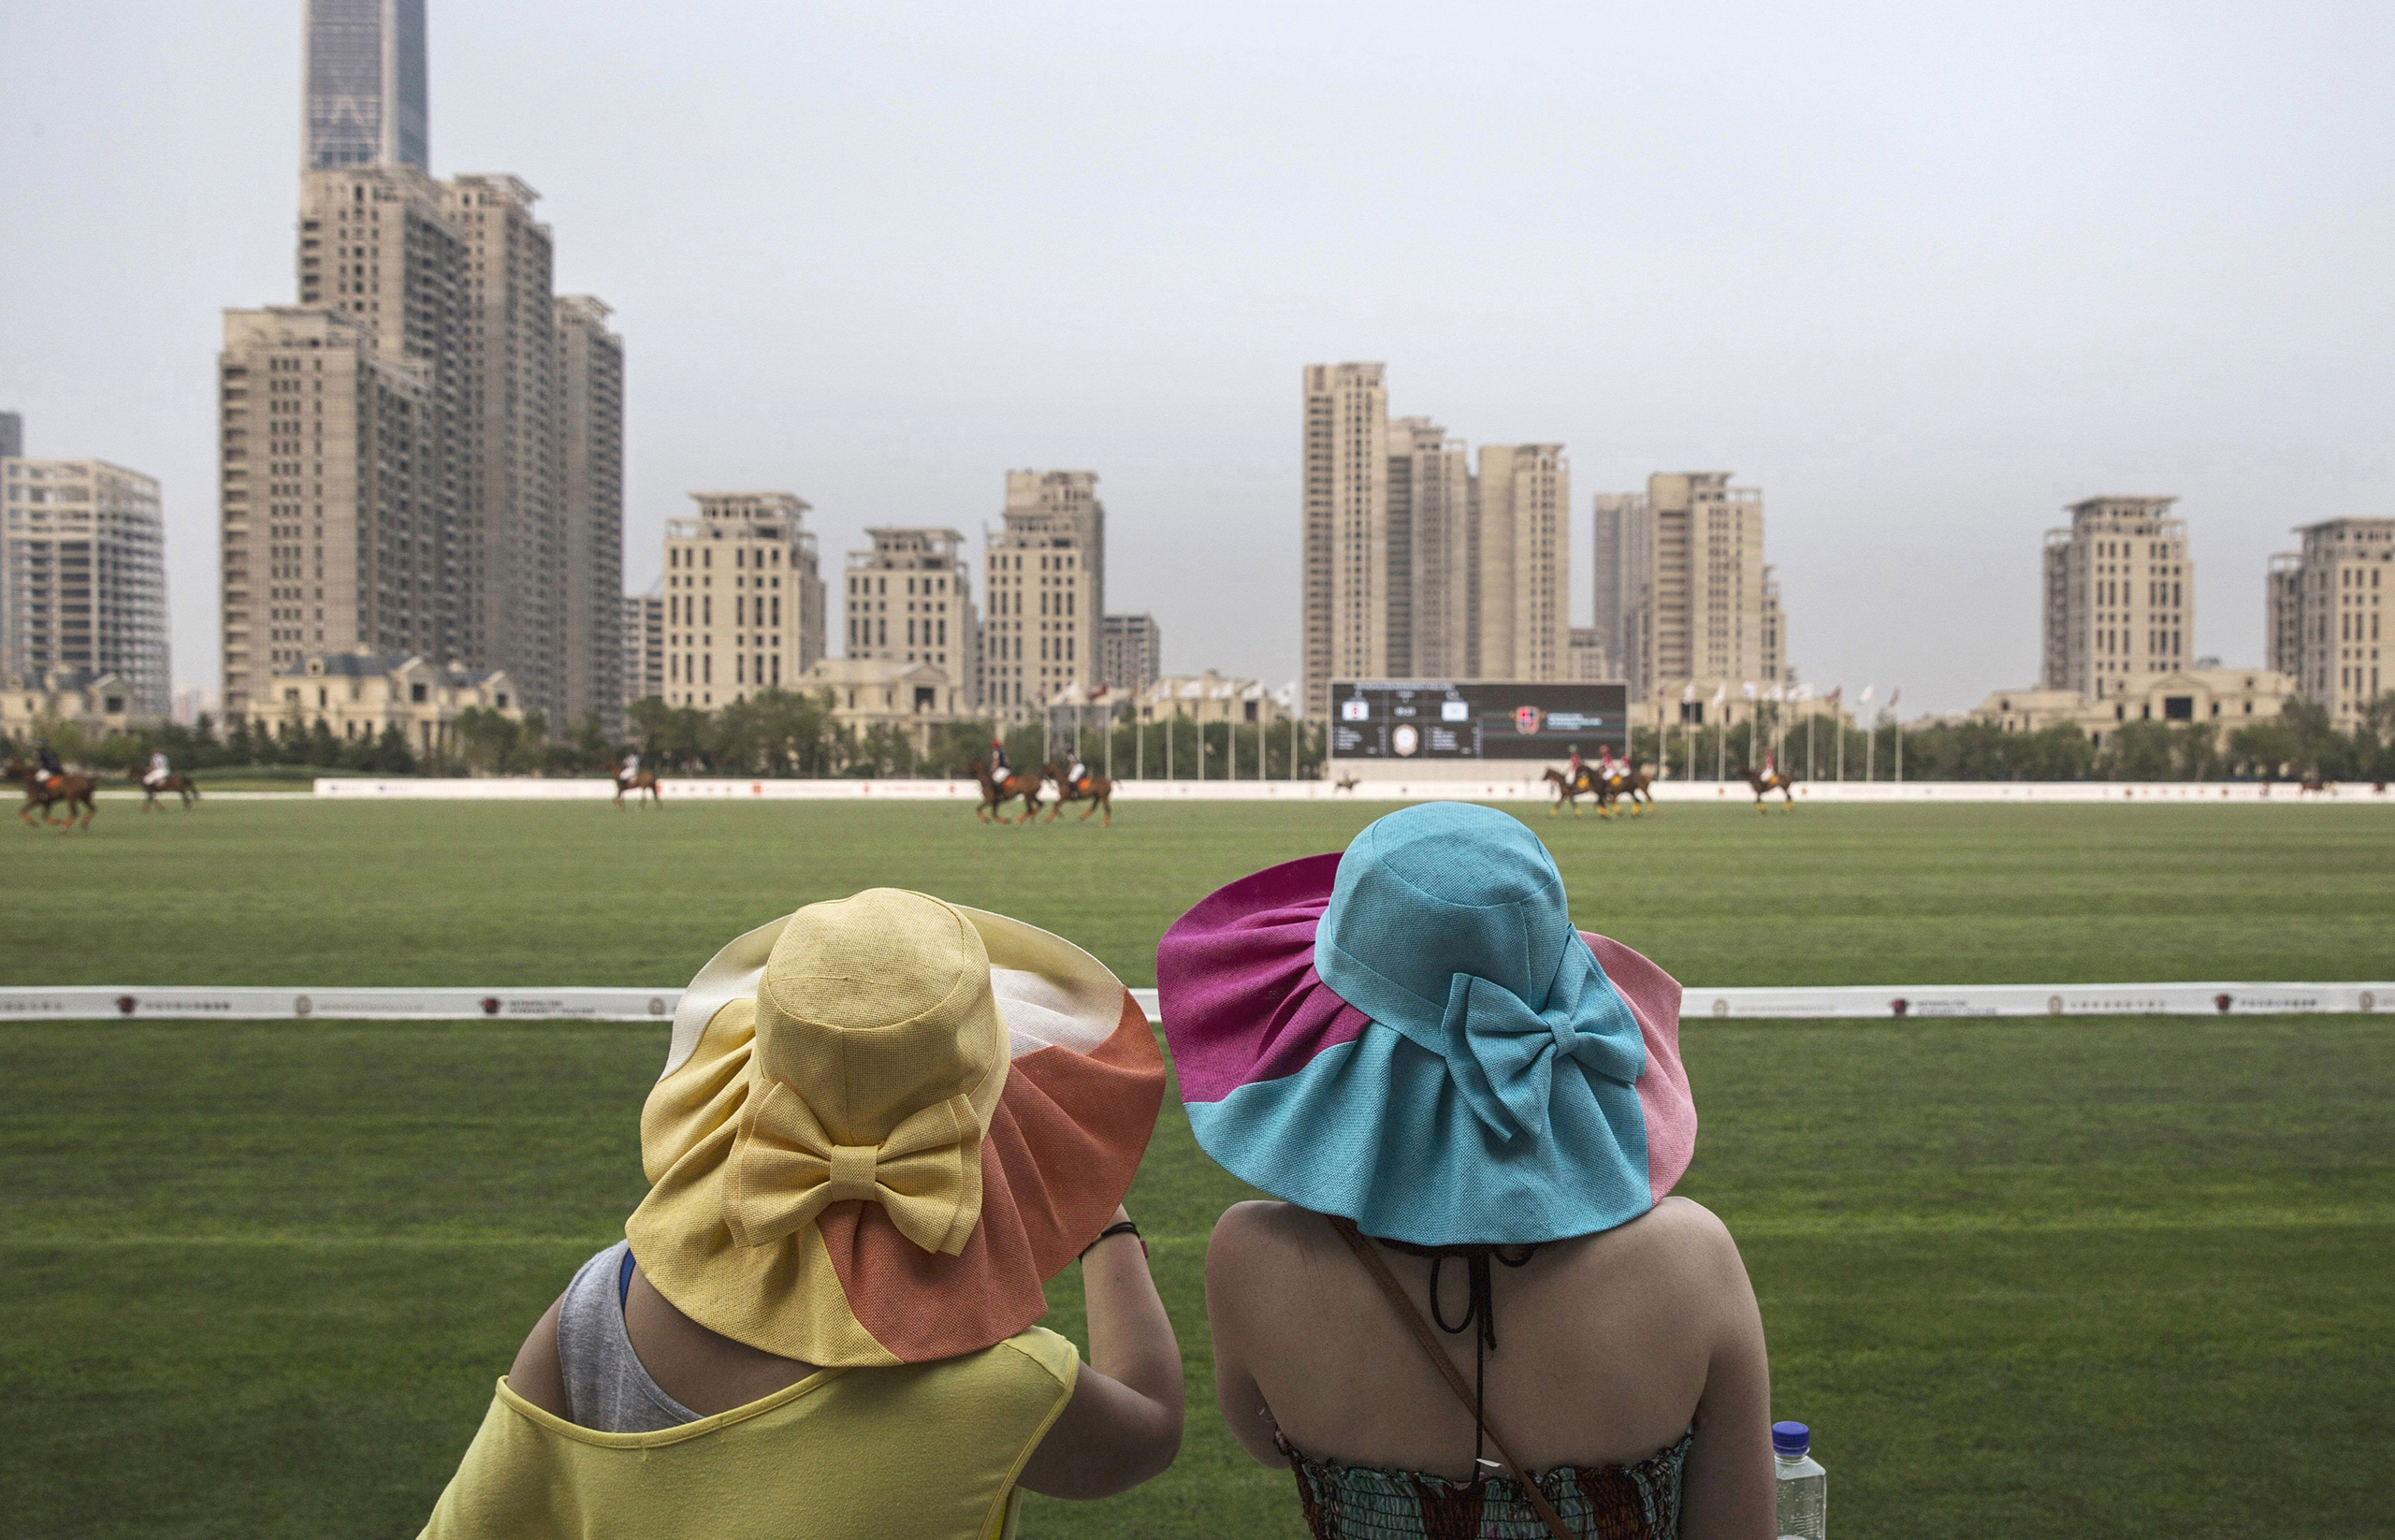 Spectators watch a match between Chinese players from the Metropolitan Polo Club team and those visiting from the U.S. and Britain during the intervarsity tournament at the Tianjin Goldin Metropolitan Polo Club in Tianjin, China, on July 17, 2016.